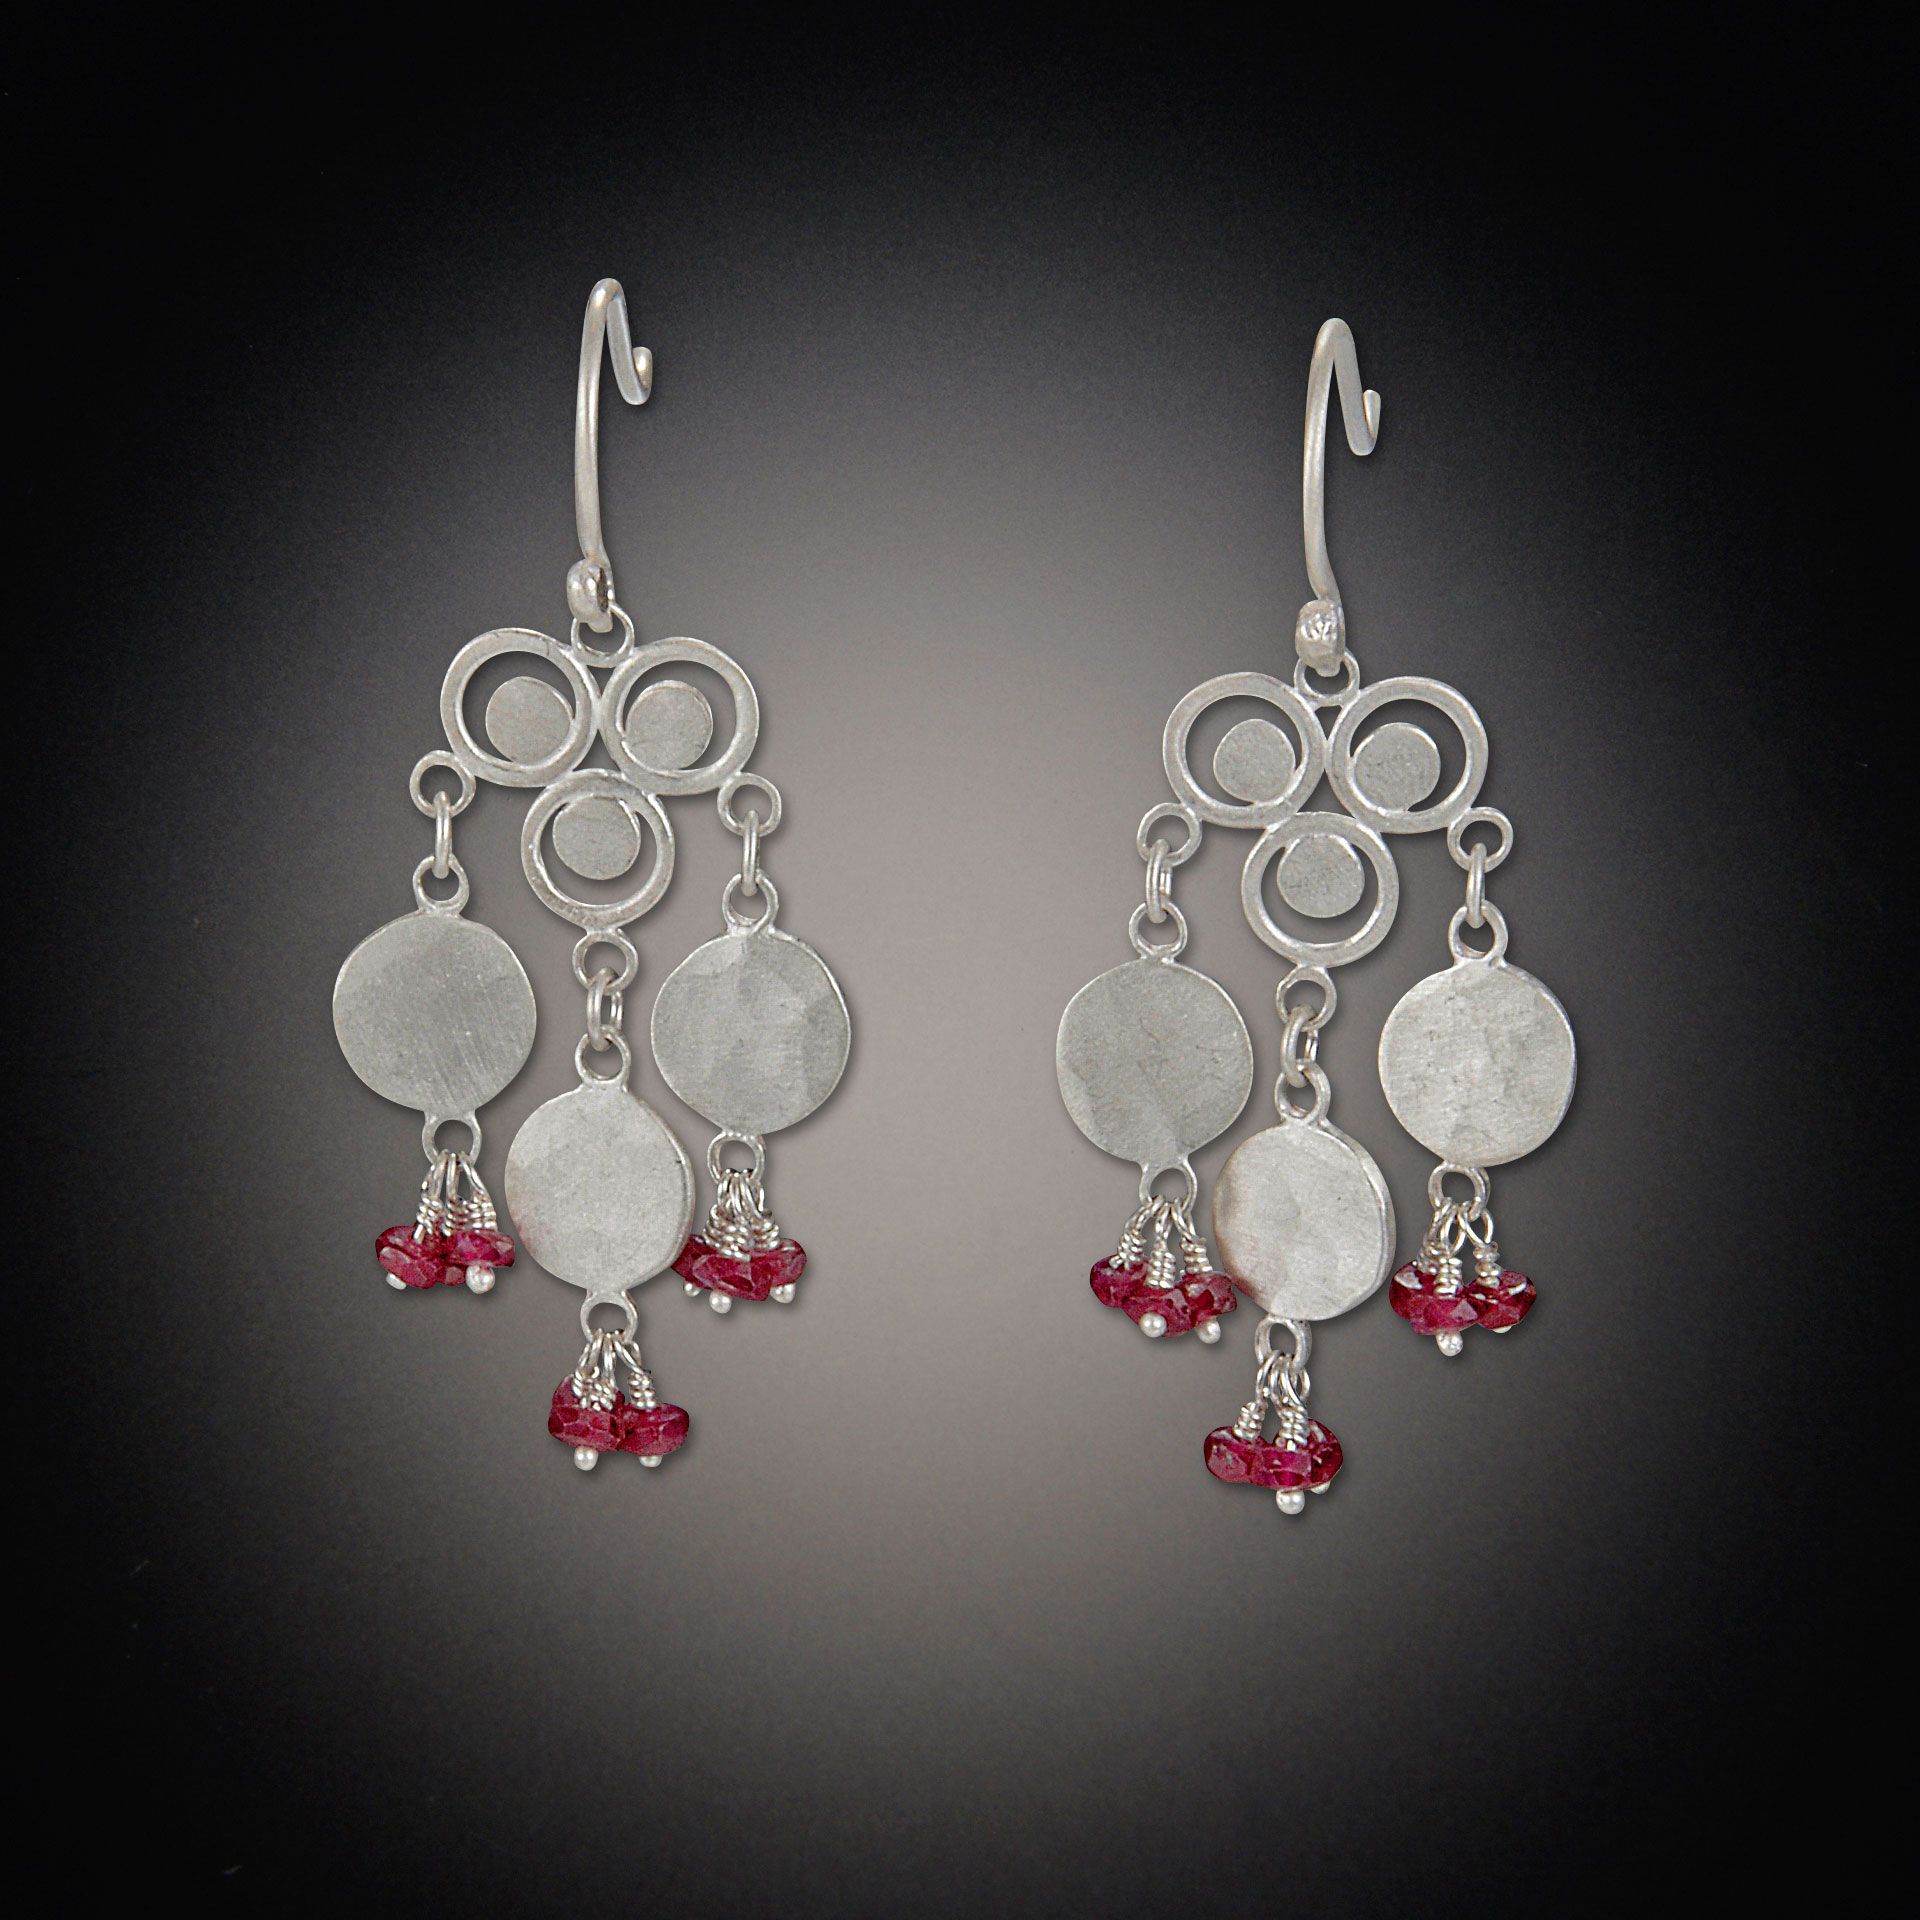 Filigree Trio Earrings with Medium Disk and Ruby Clusters | Ananda Khalsa Jewelry